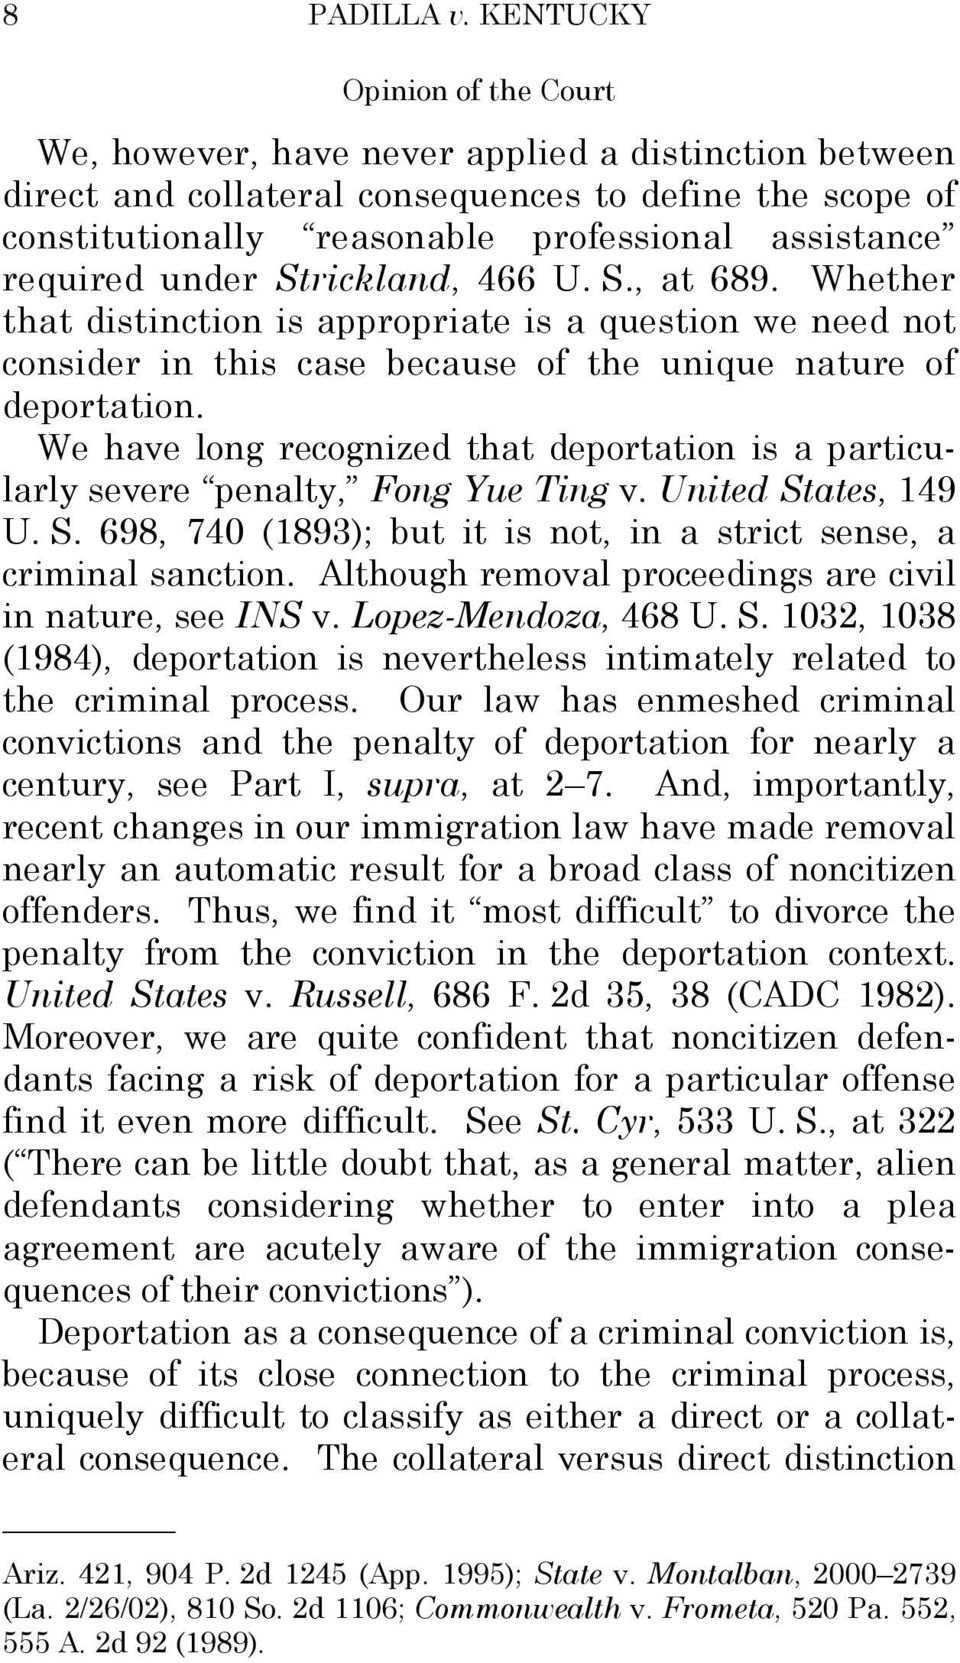 required under Strickland, 466 U. S., at 689. Whether that distinction is appropriate is a question we need not consider in this case because of the unique nature of deportation.